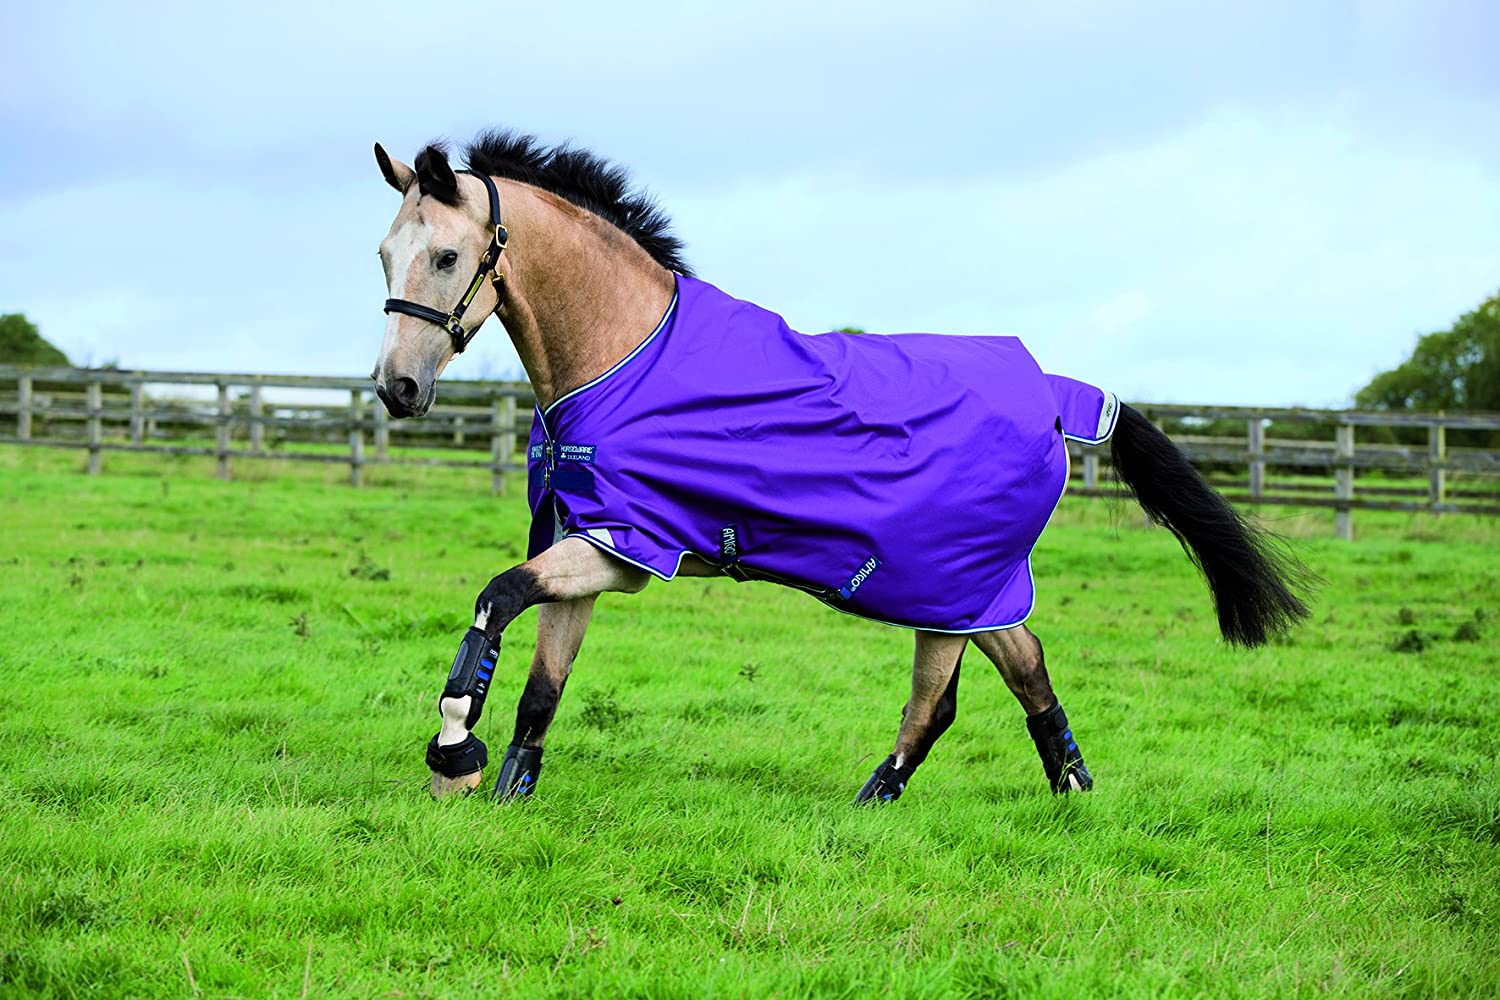 Horseware Amigo Bravo 12 Turnout 100g - Purple/Navy